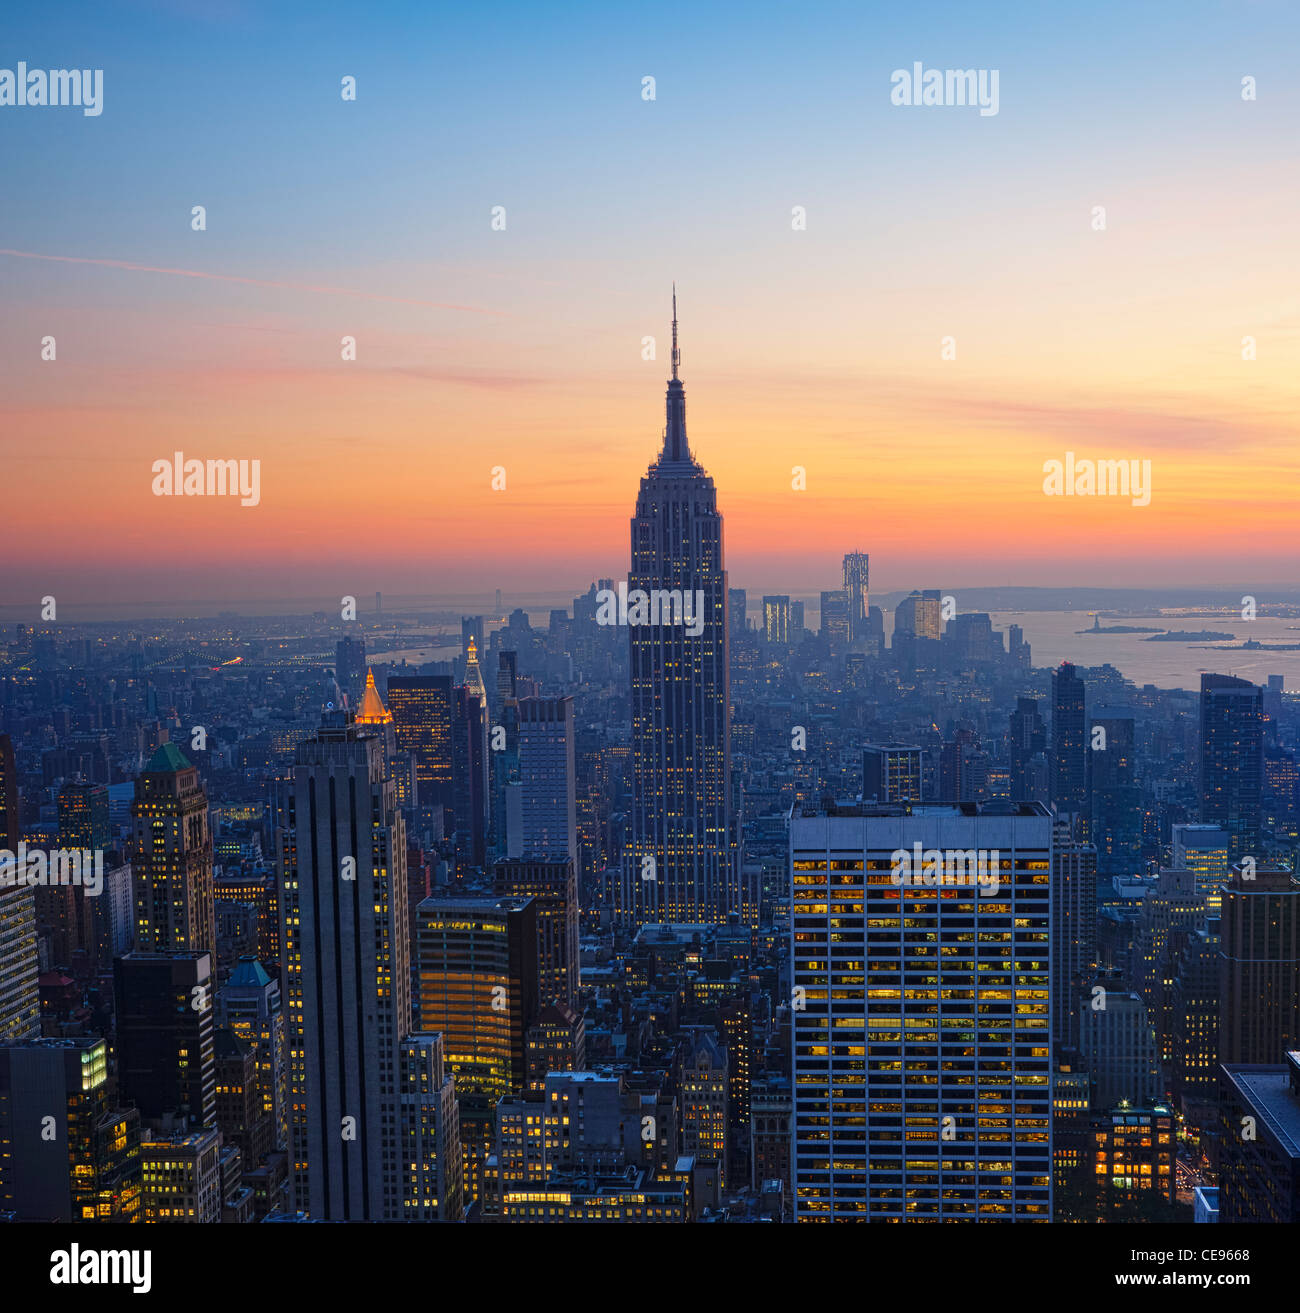 Empire State Building at Sunset from Top of the Rock Observatory - Stock Image